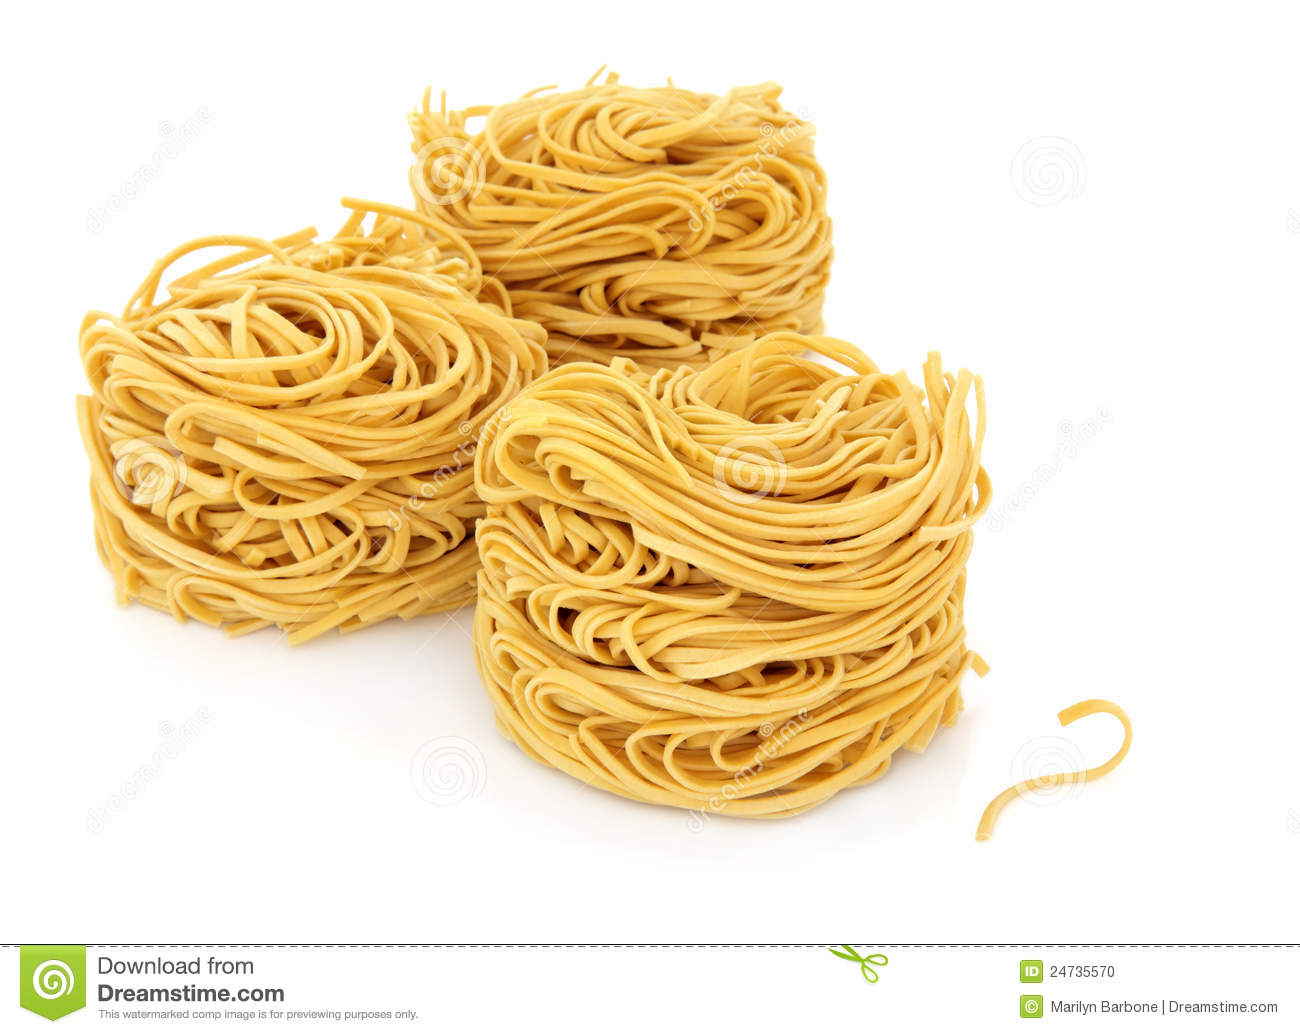 business plan for noodles Detailed project reports & profiles on macaroni, vermicilli & noodles manufacturing - manufacturing plant, detailed project report, profile, business plan, industry trends, market research, survey, manufacturing process, machinery, raw materials, feasibility study, investment opportunities.